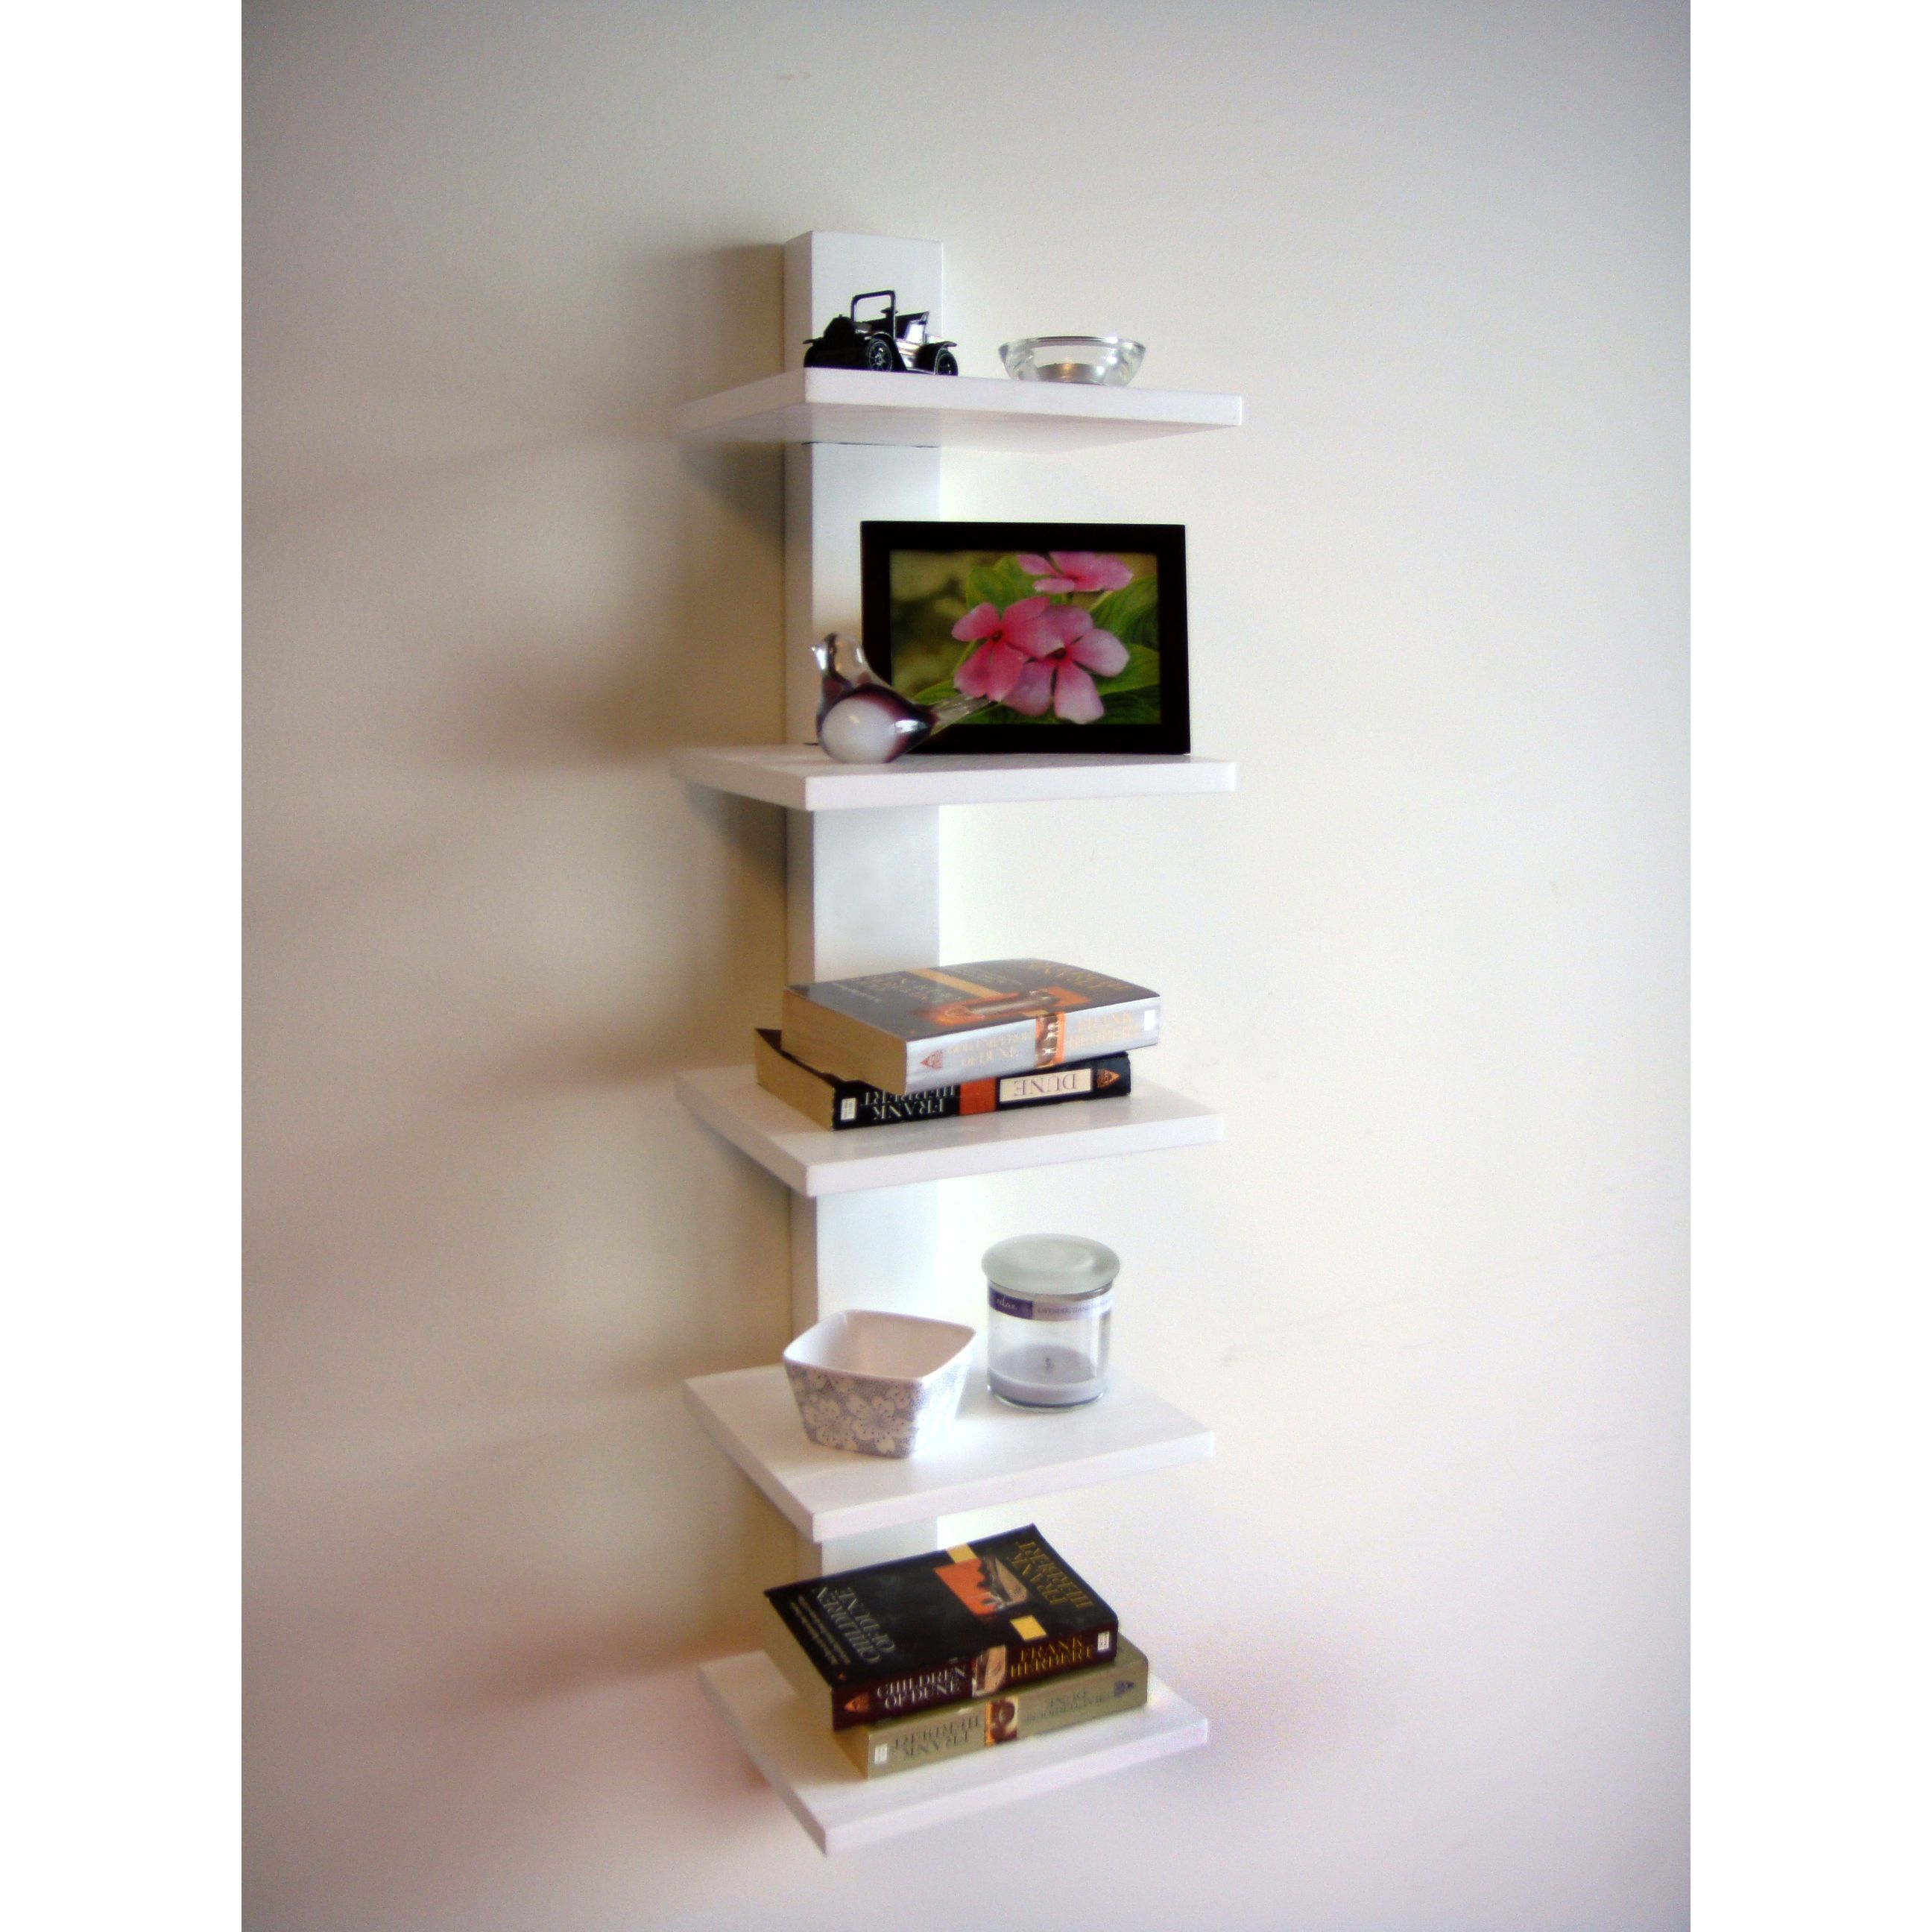 Wall Book Racks Spine Wall White Book Shelves By Proman Wall Mounted